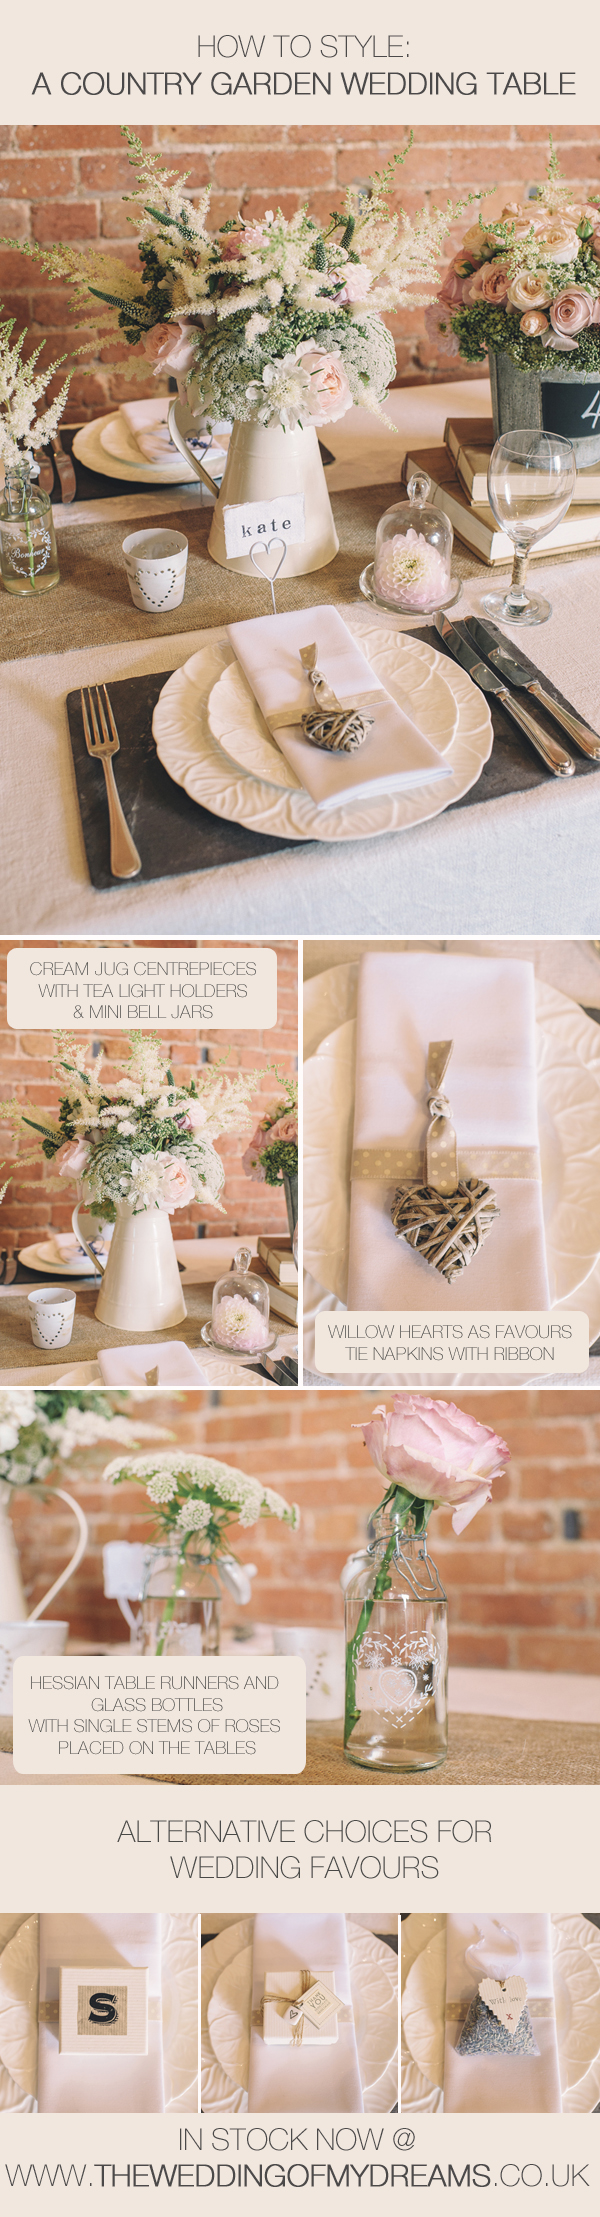 how to style a country garden wedding tables jug centrepieces wedding favours glass bottles hessian table runners